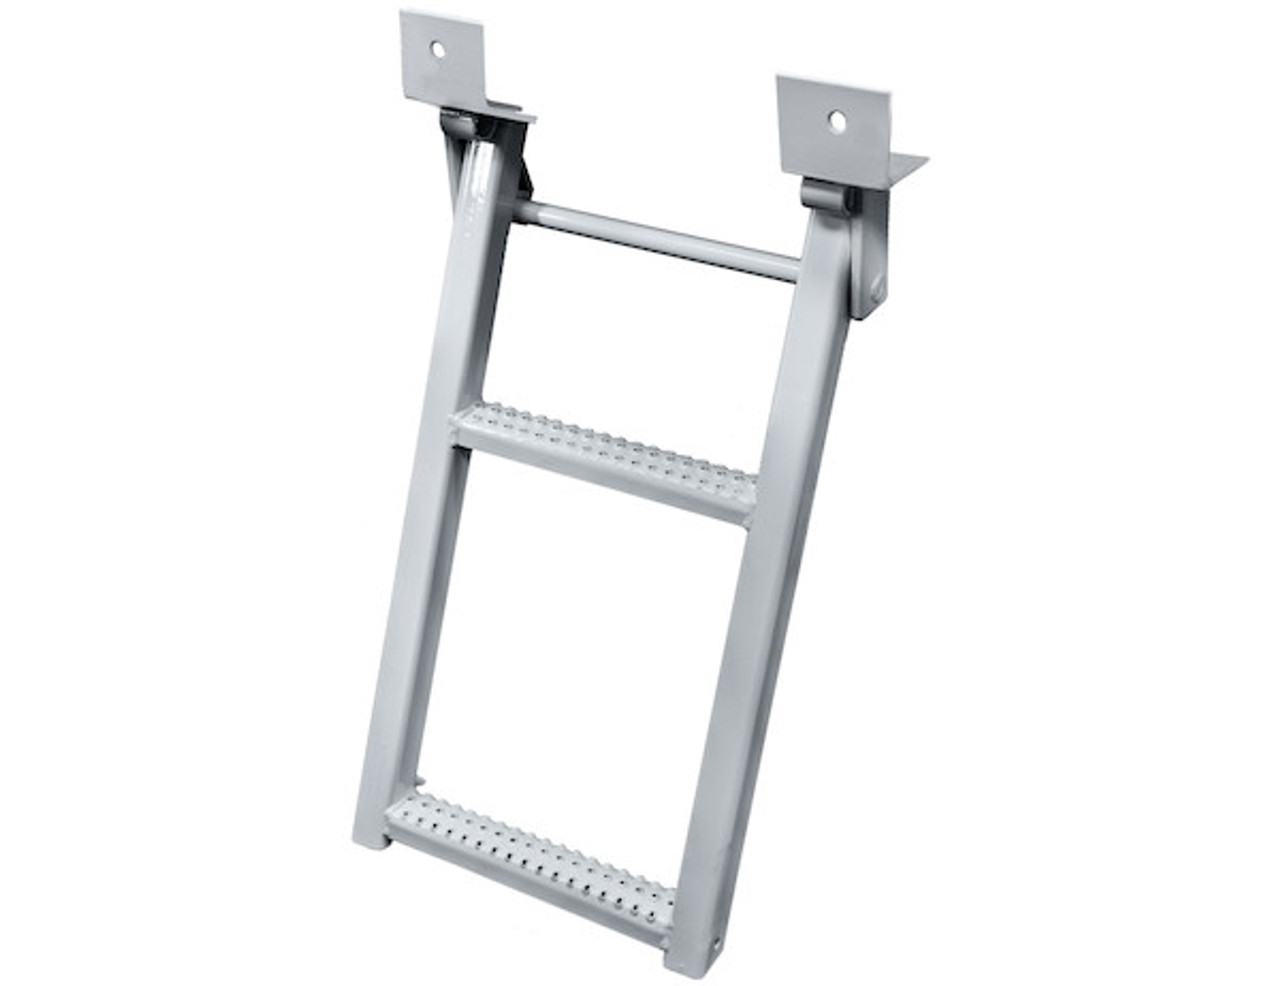 RS2W Buyer's 2-Rung White Retractable Truck Steps With Nonslip Tread - 17.38 X 30.25 Inch